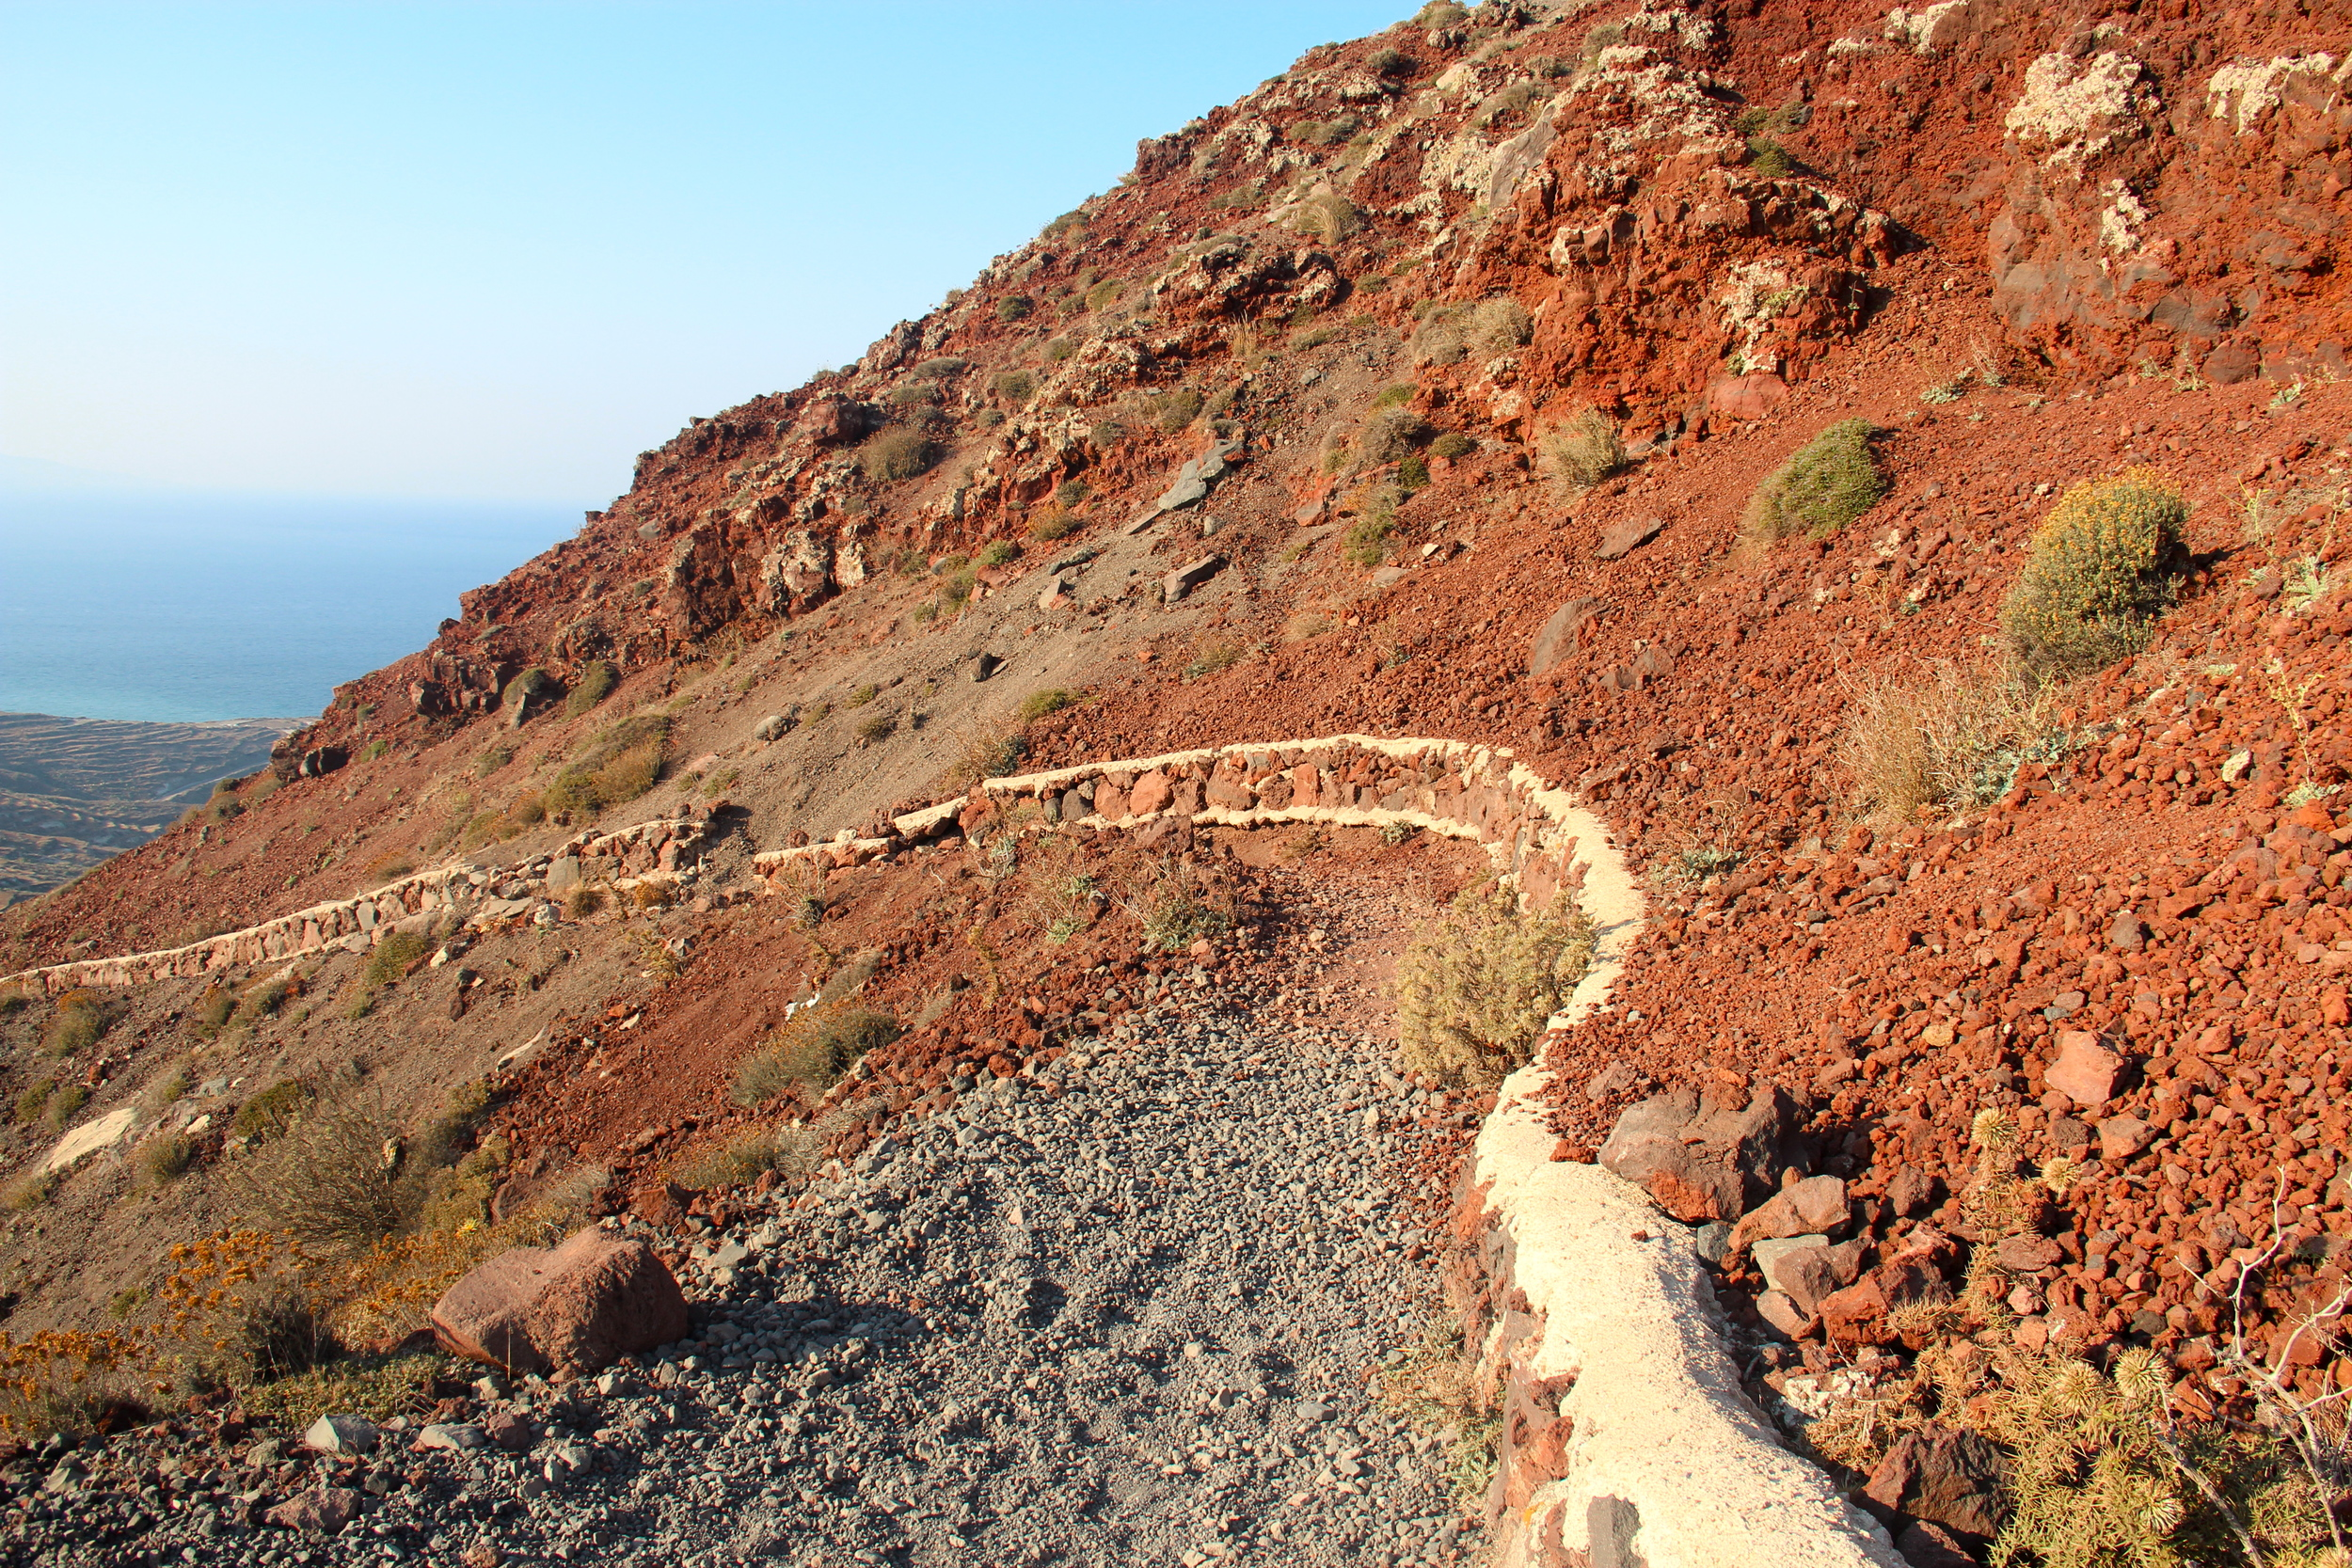 Hot rocks on the long road to Oia. Don't wear sandals.